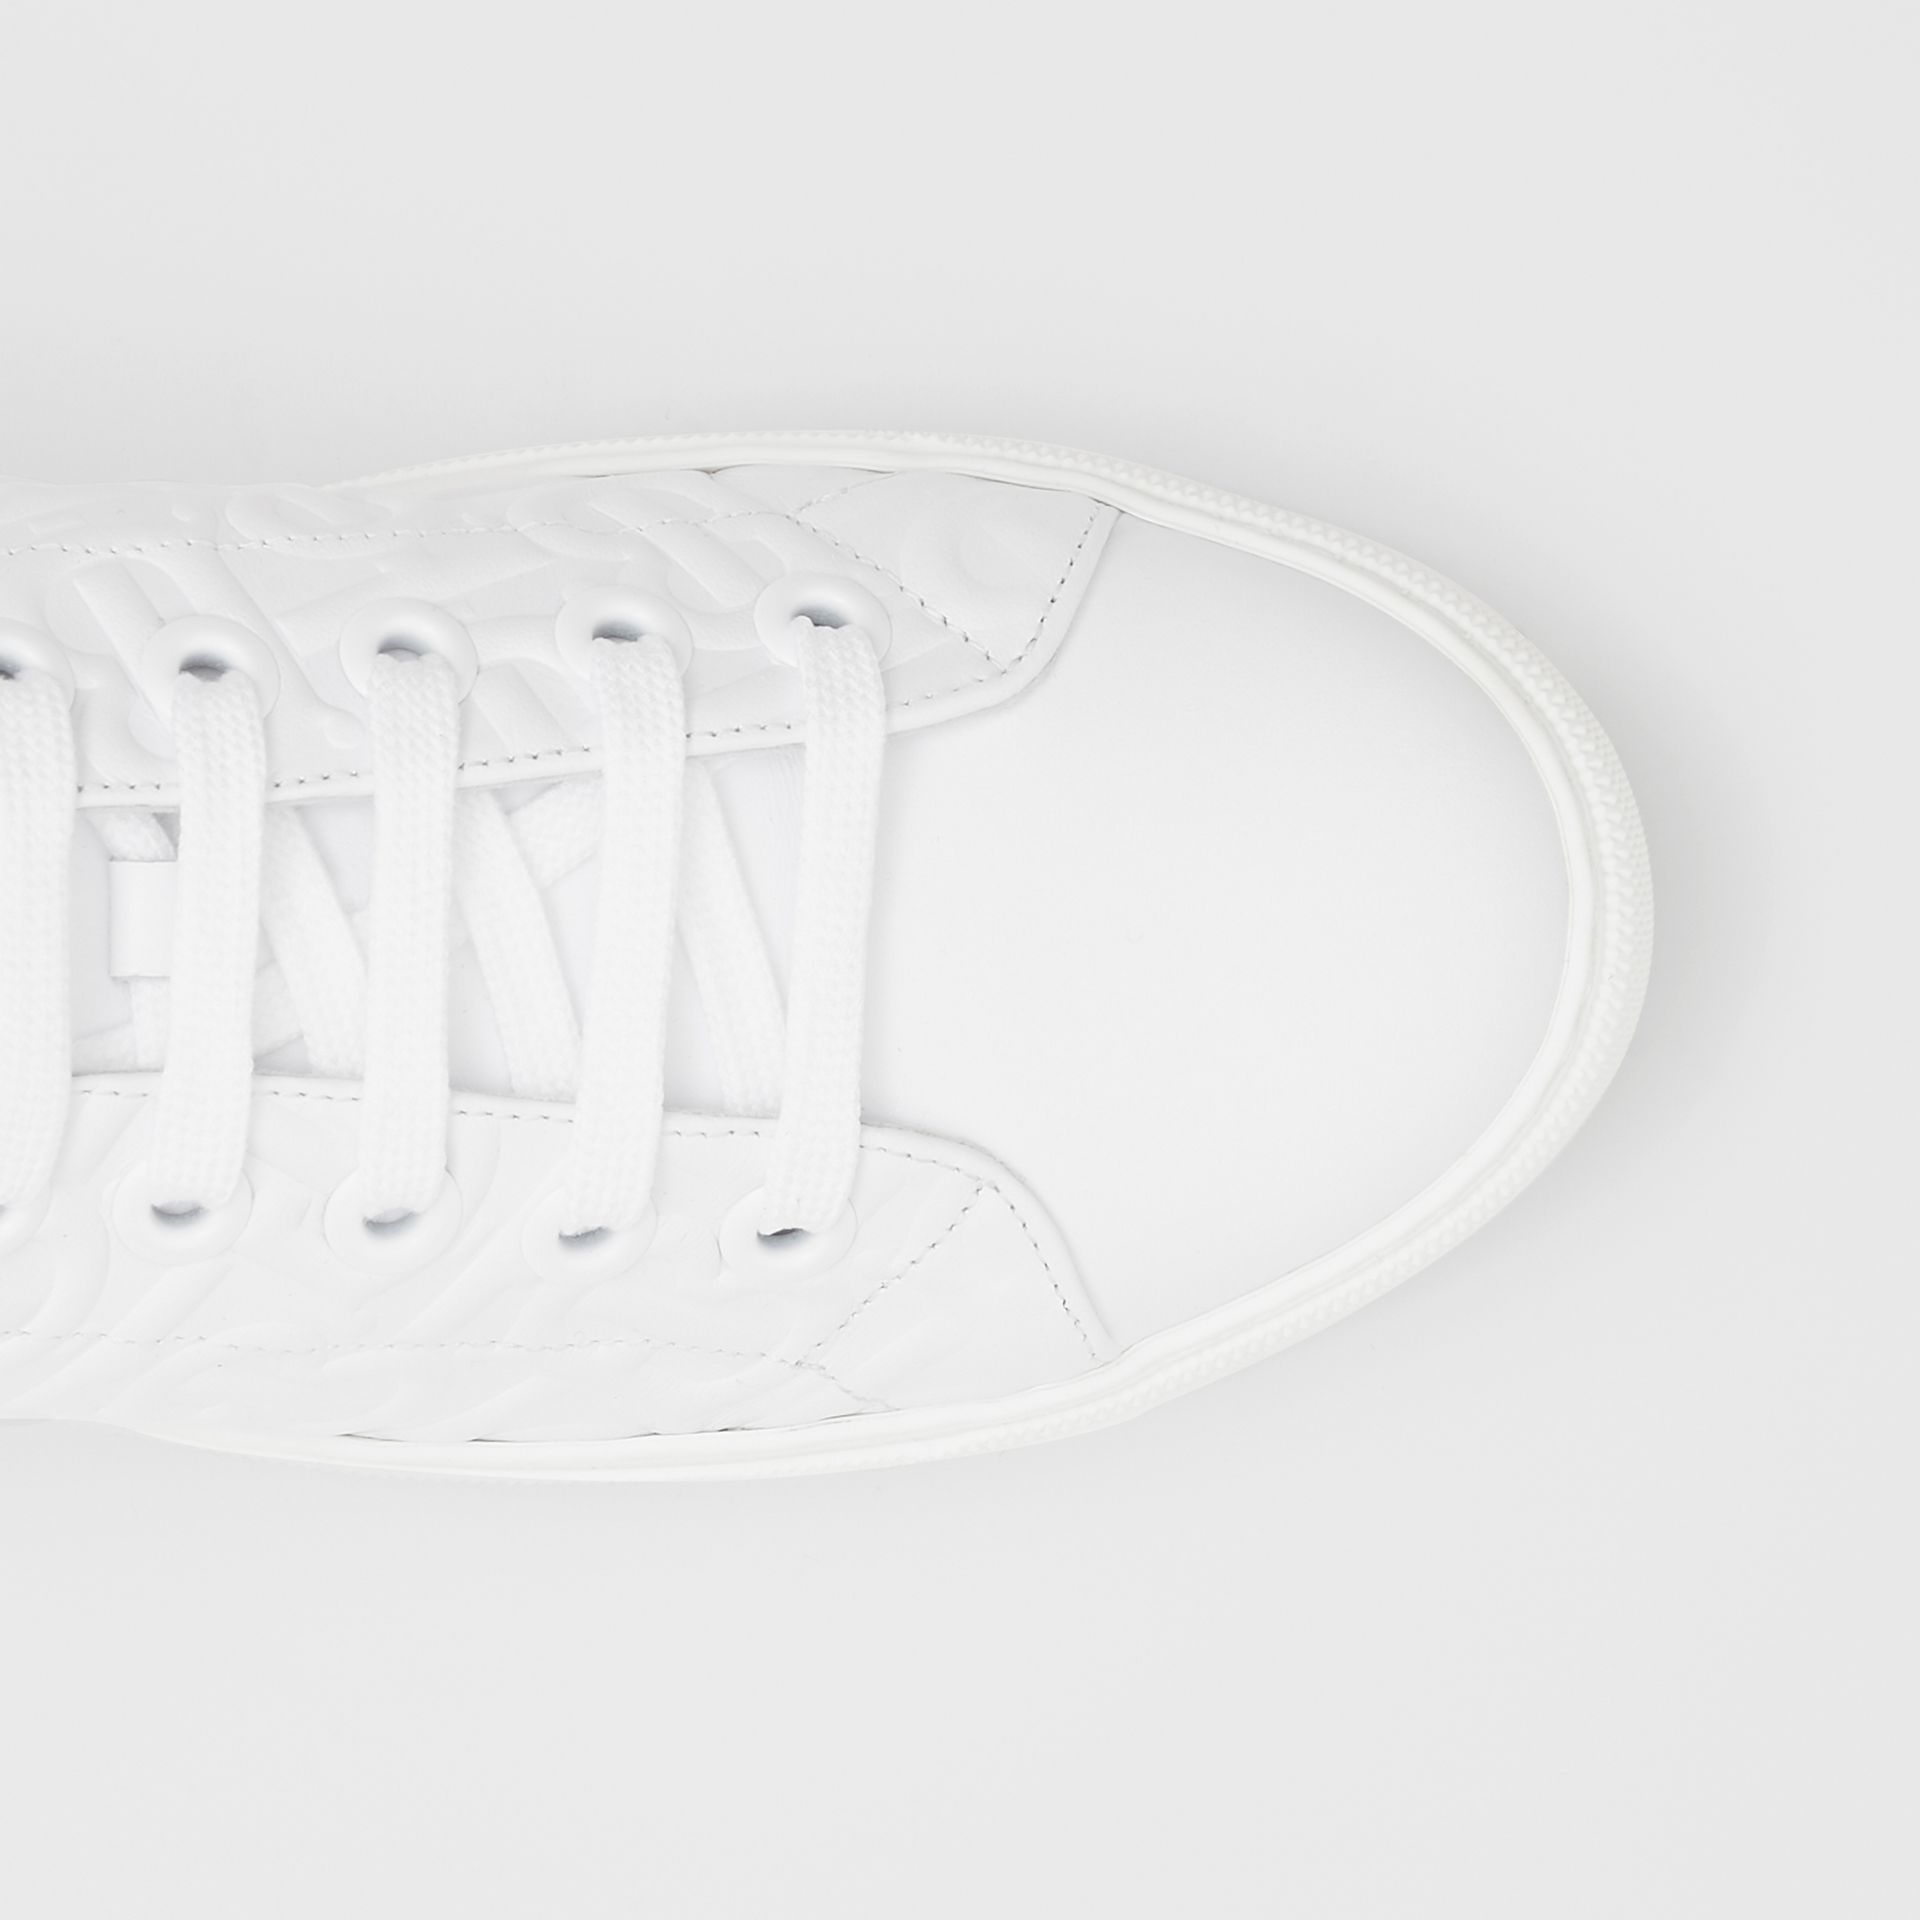 Sneakers en cuir Monogram (Blanc) - Femme | Burberry - photo de la galerie 1